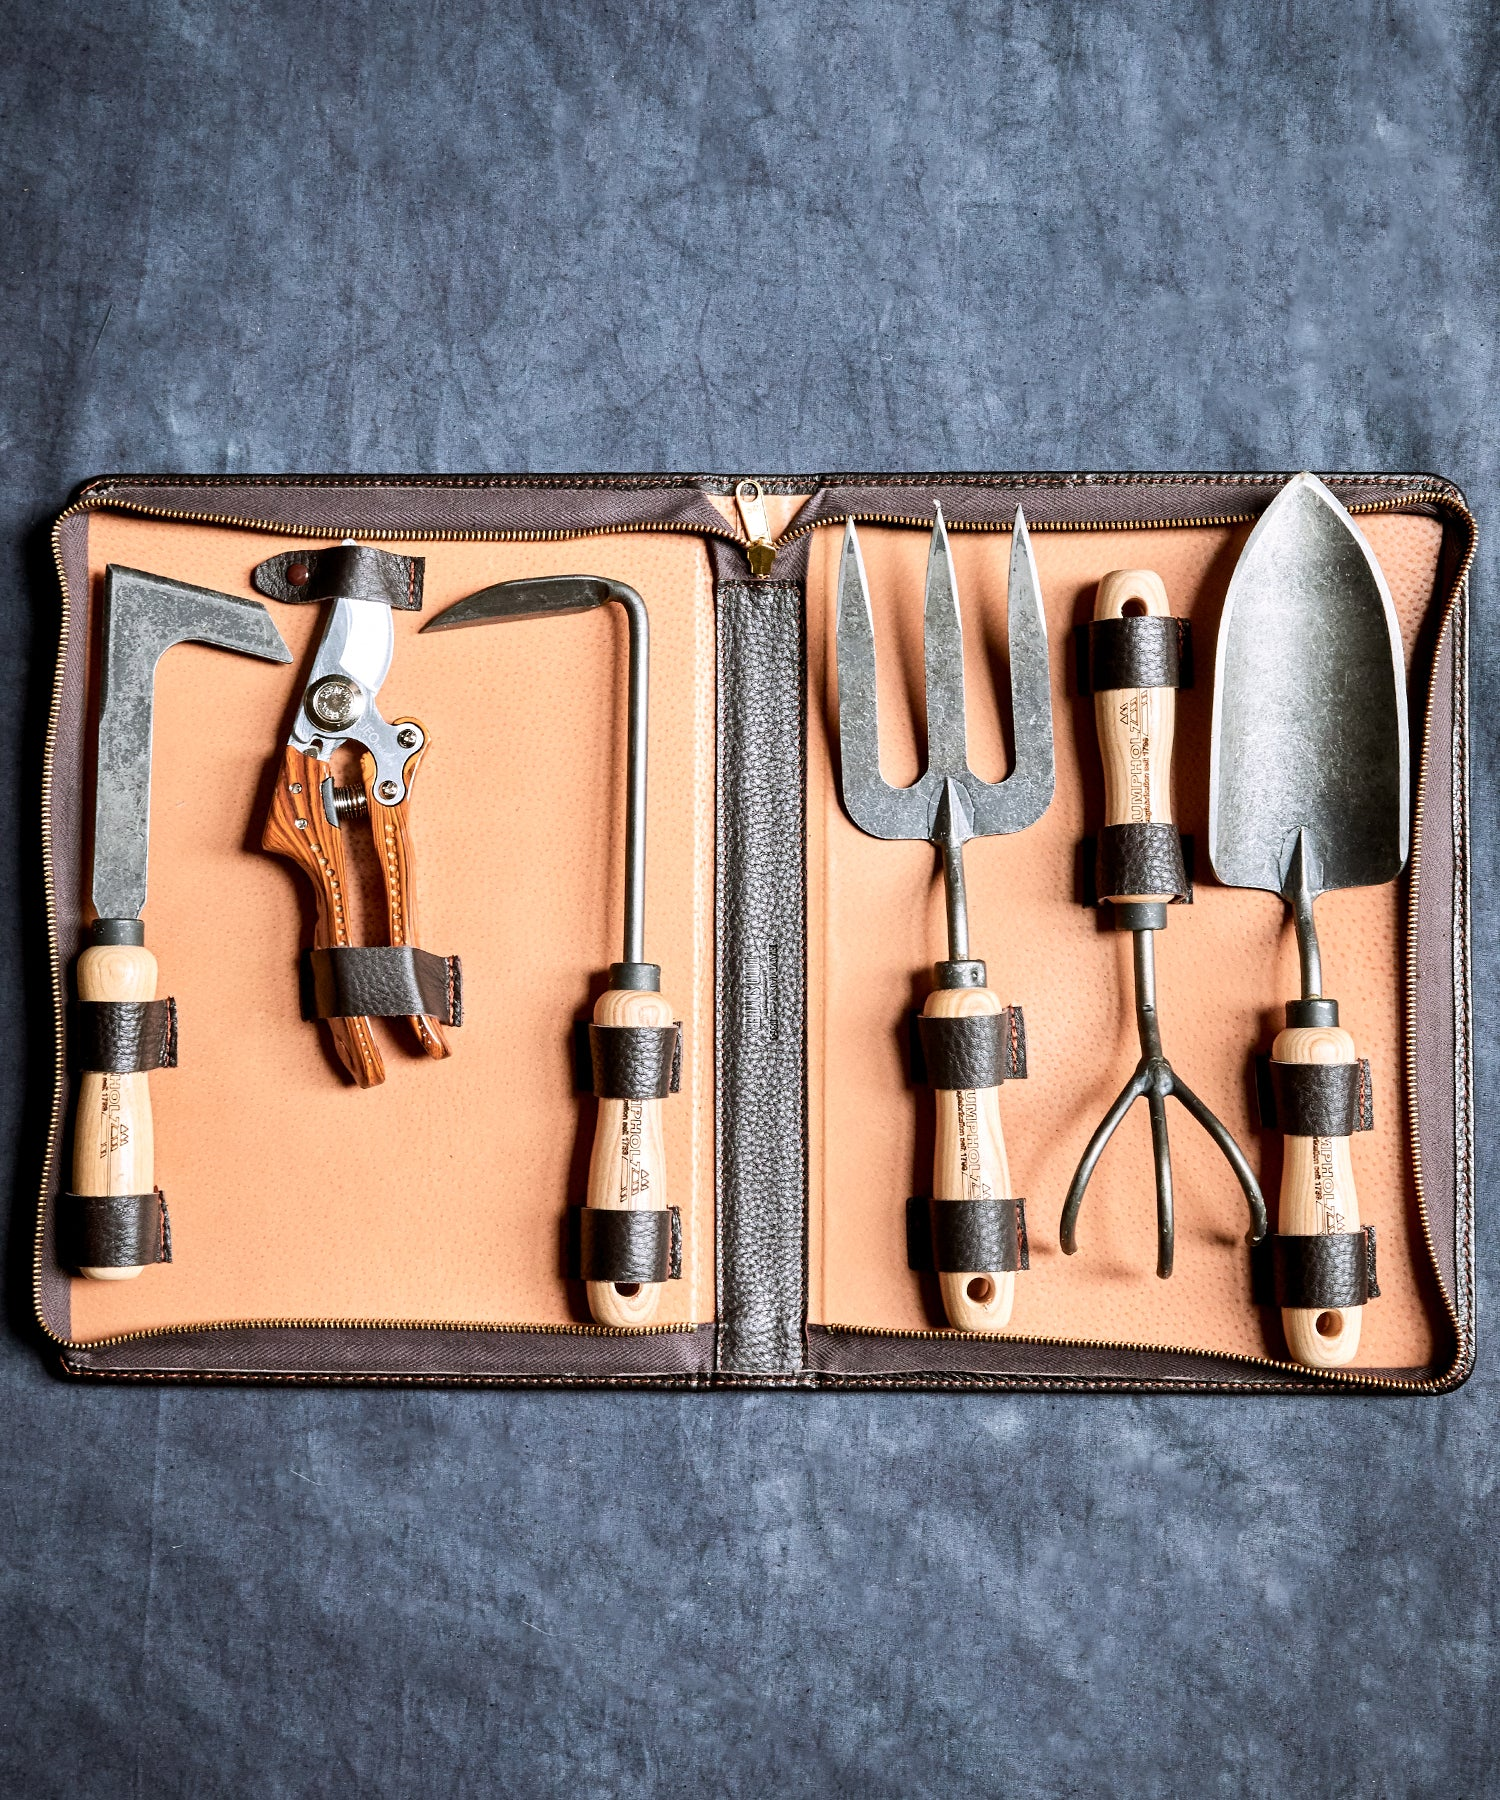 F. Hammann for Todd Snyder Gardening Set